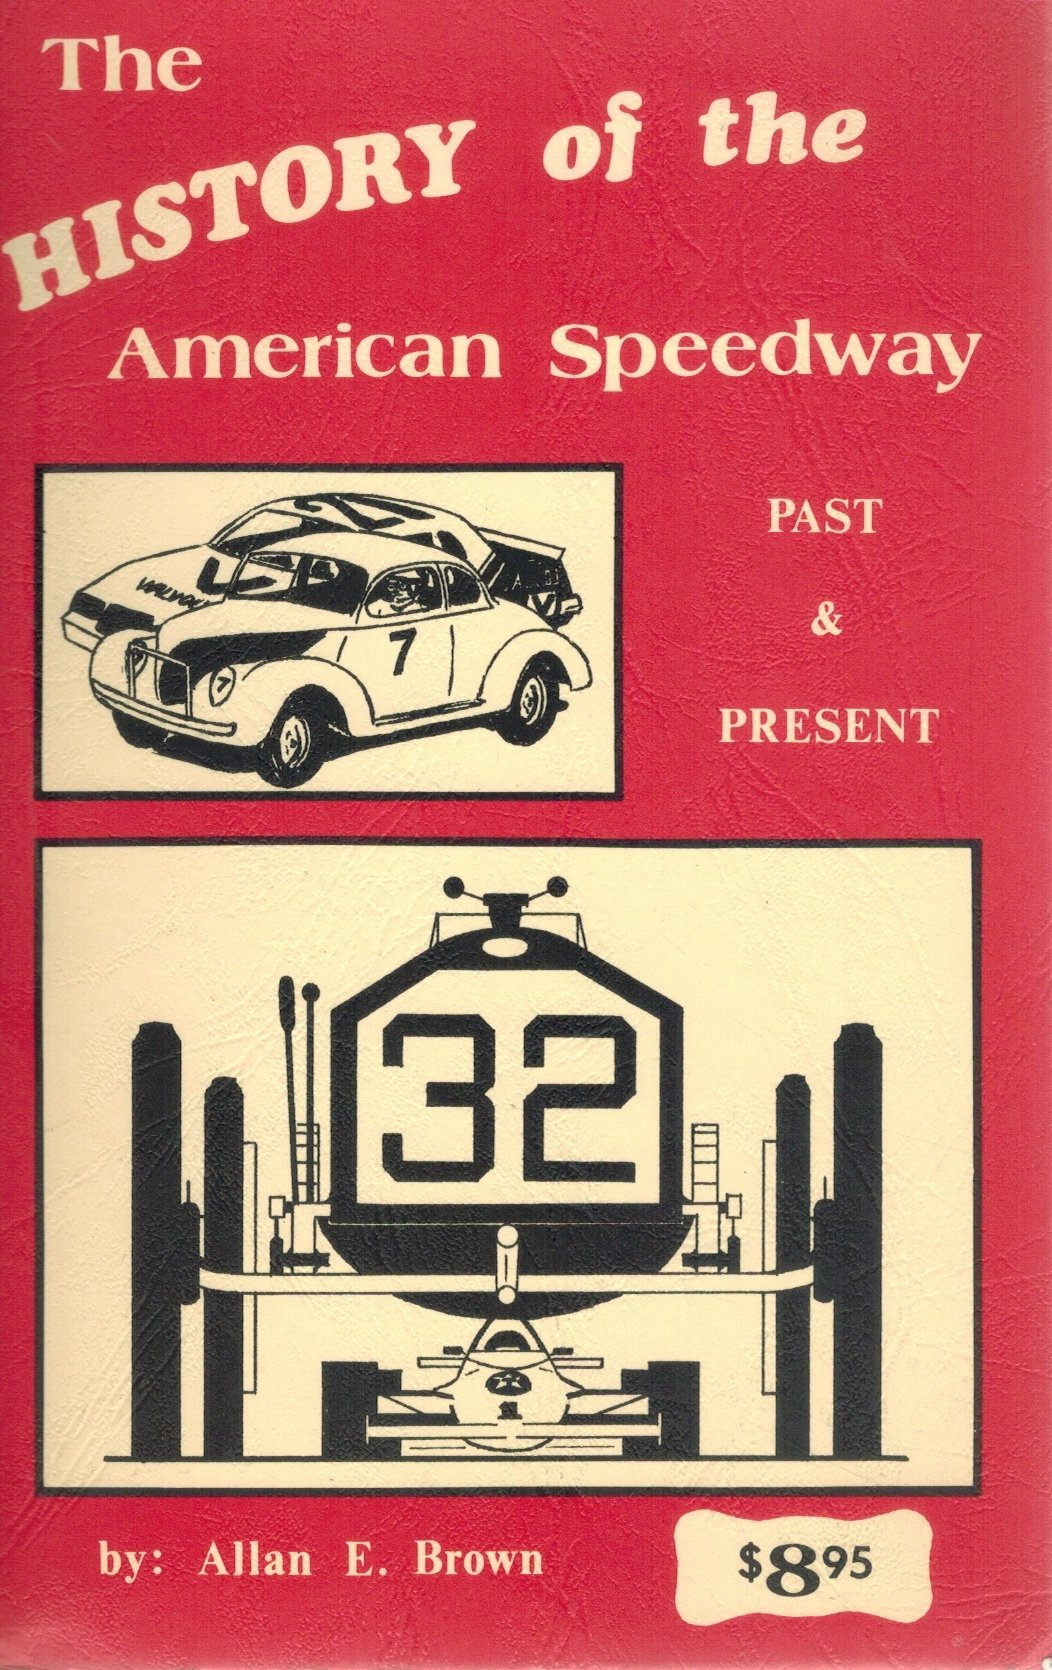 THE HISTORY OF THE AMERICAN SPEEDWAY